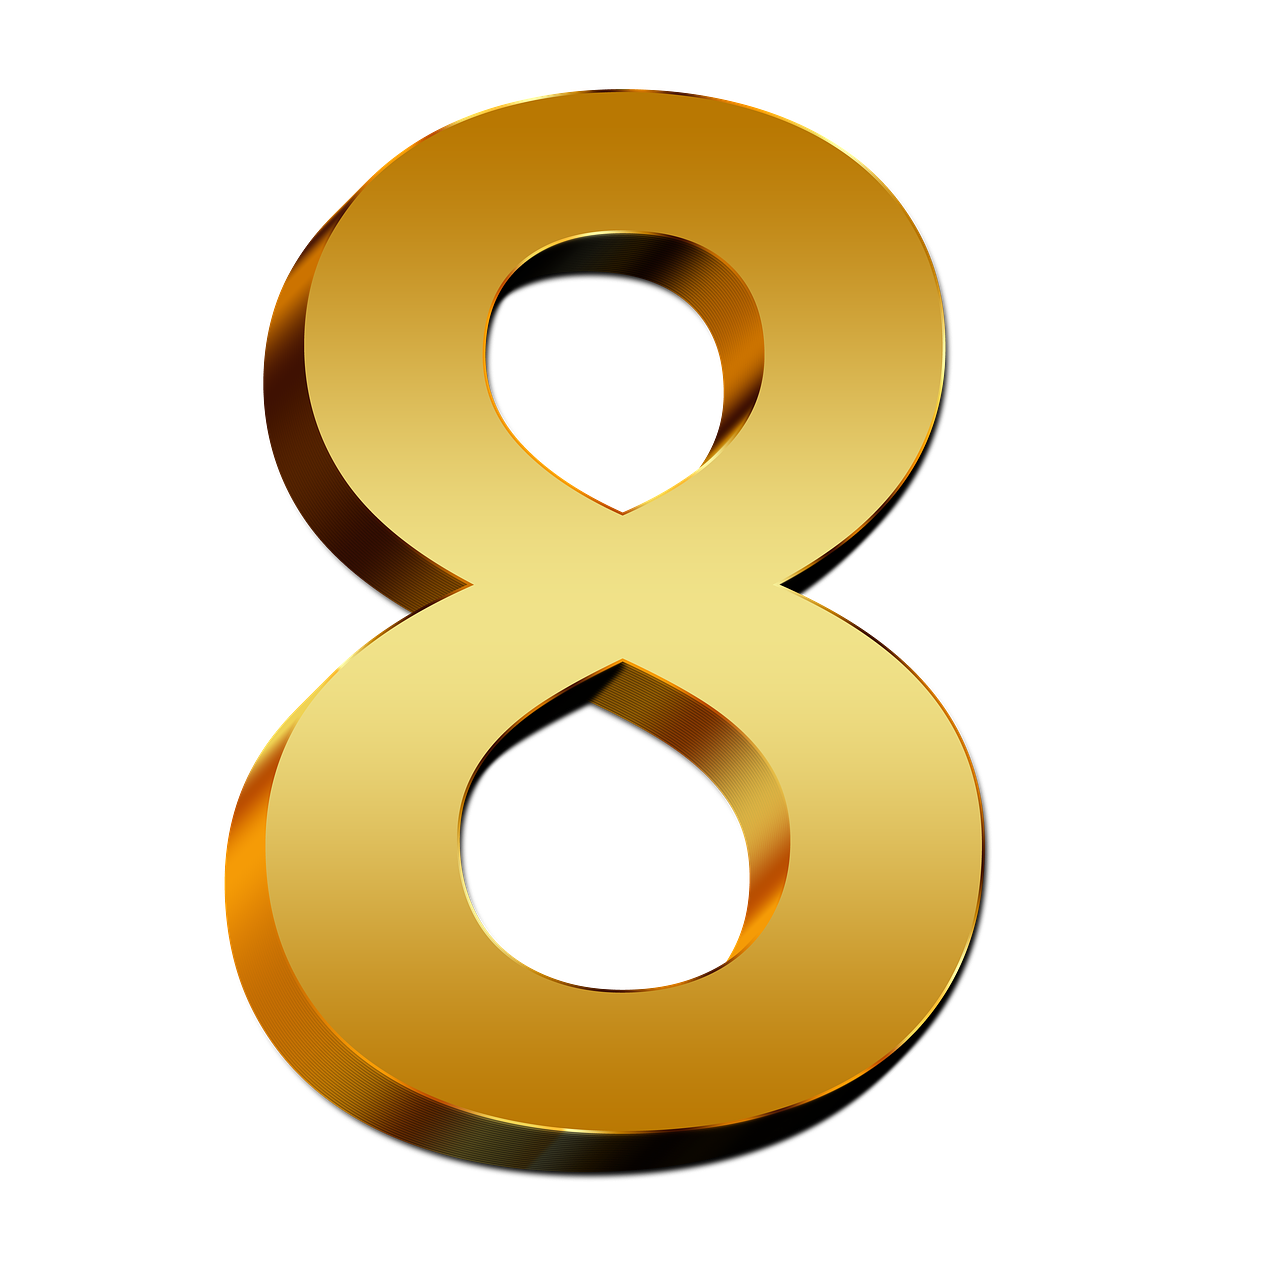 Numbers png images. To transparent all